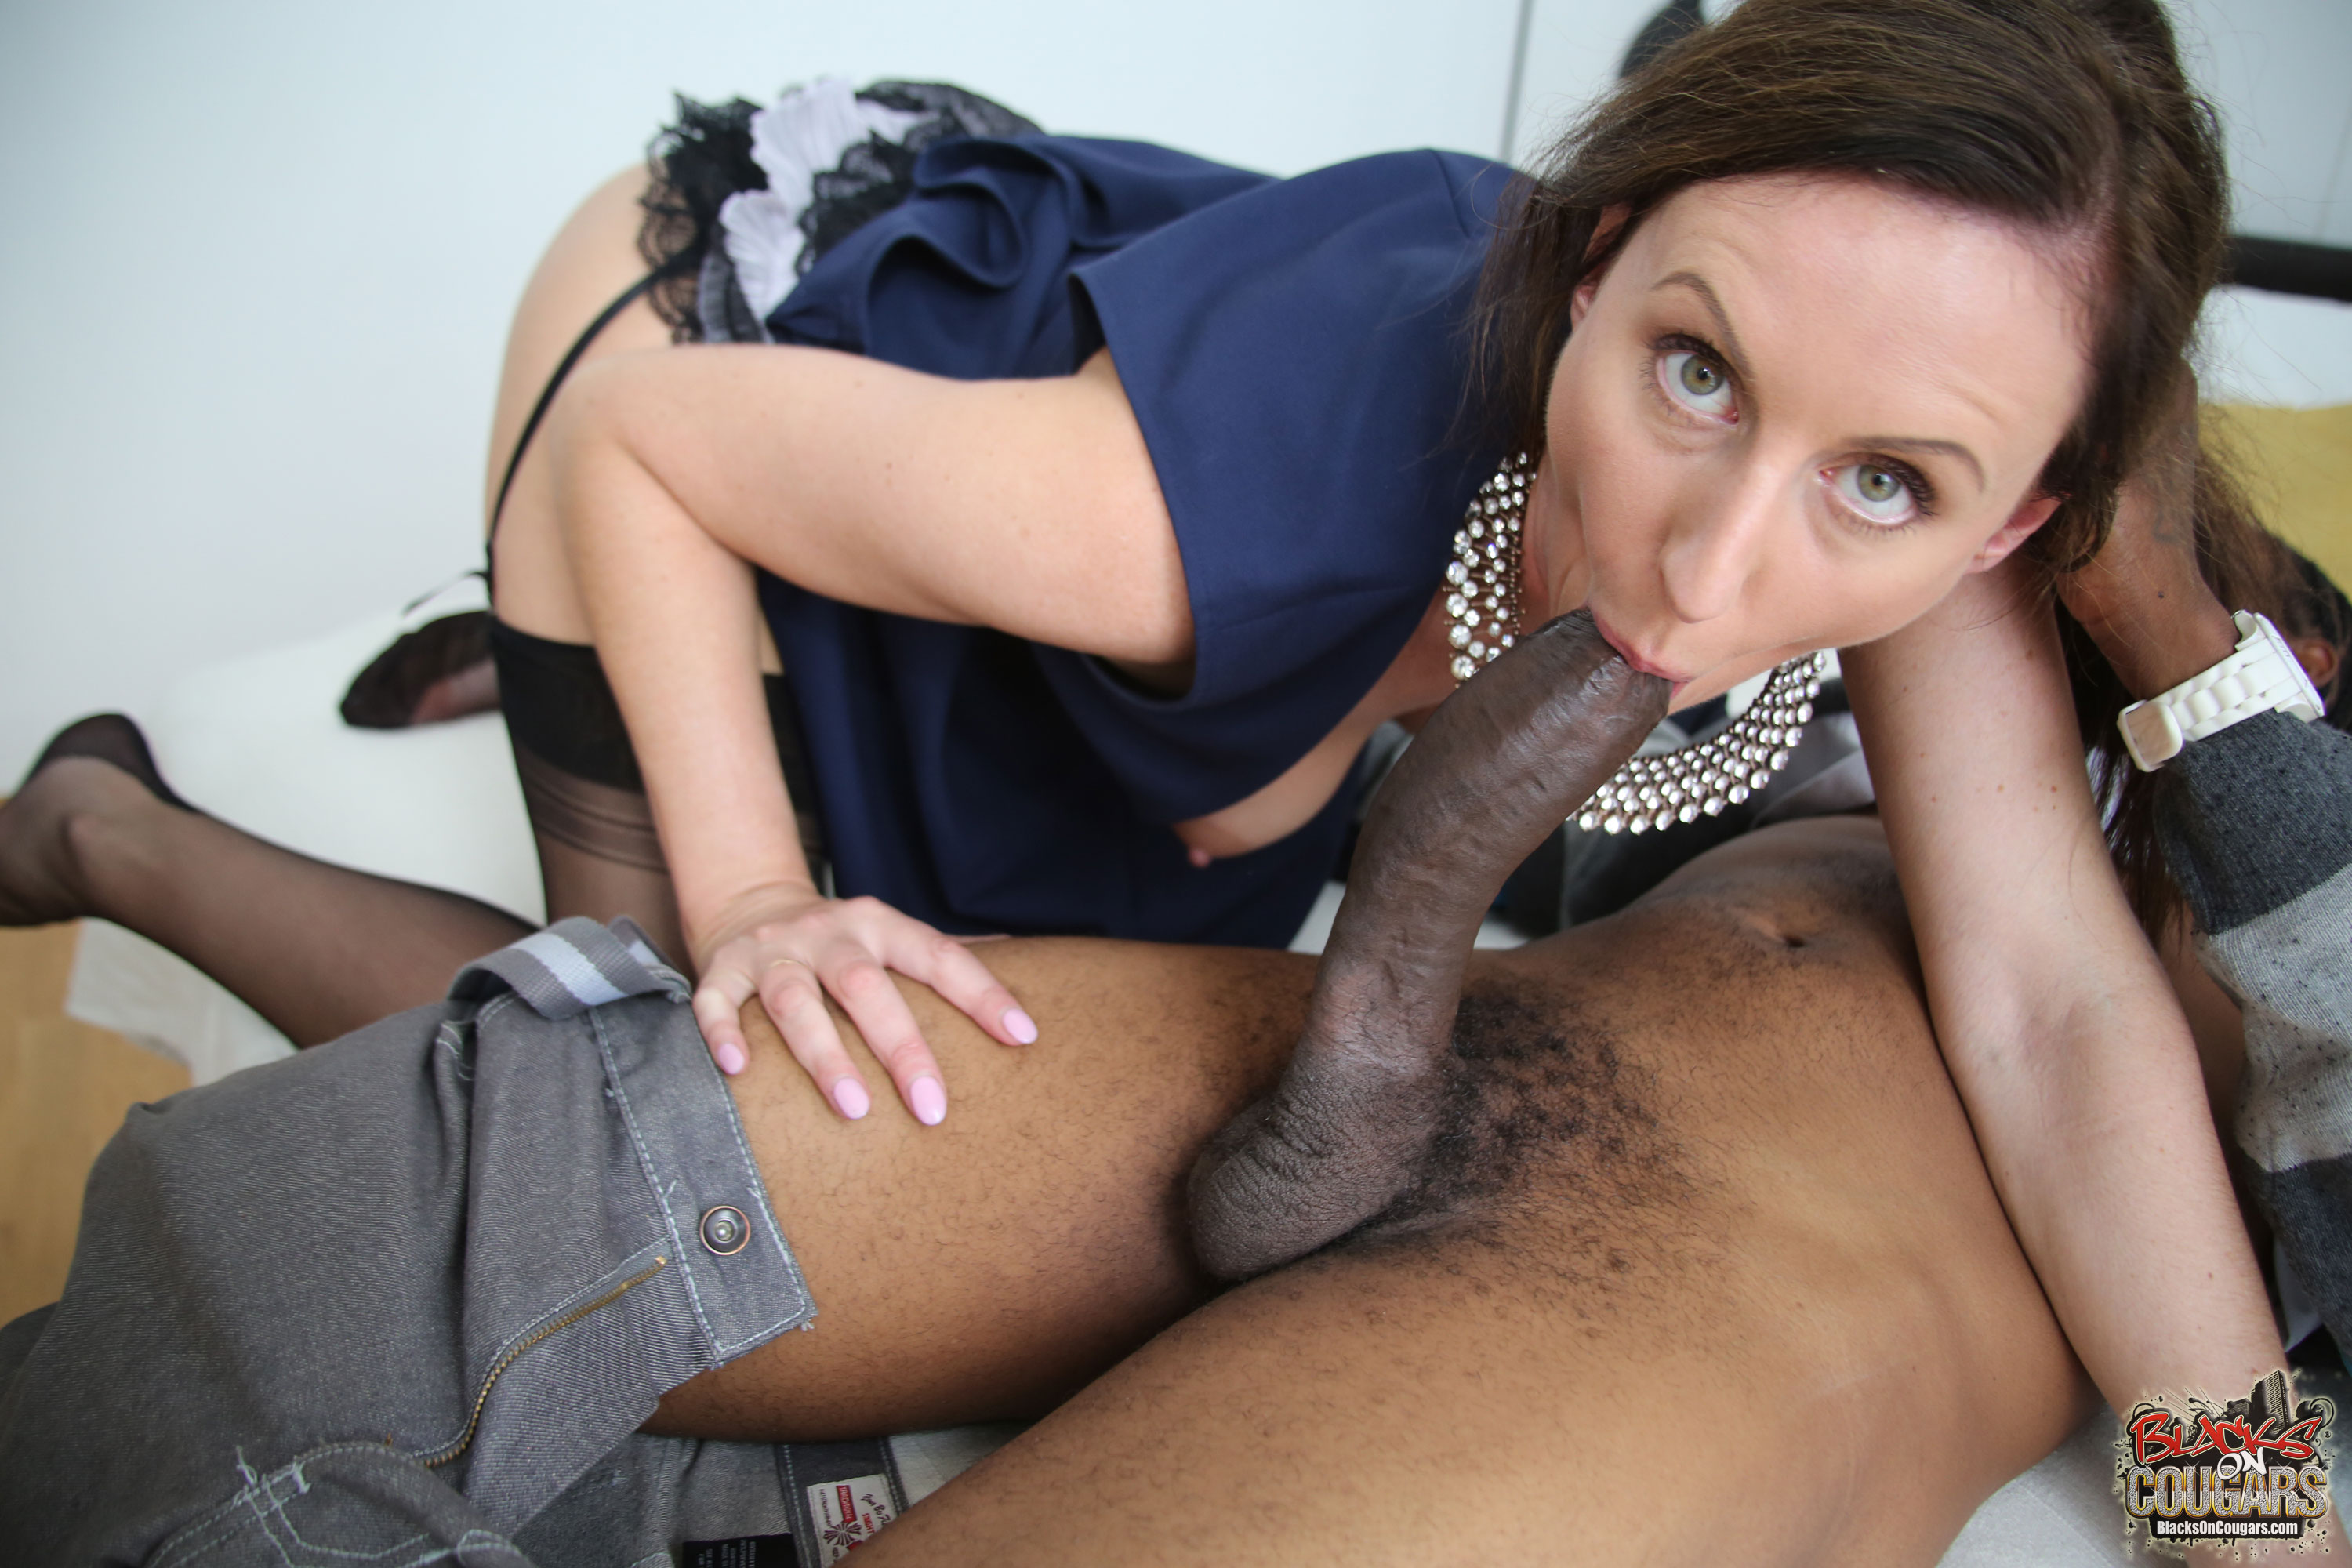 Remarkable, rather My freeones mature black